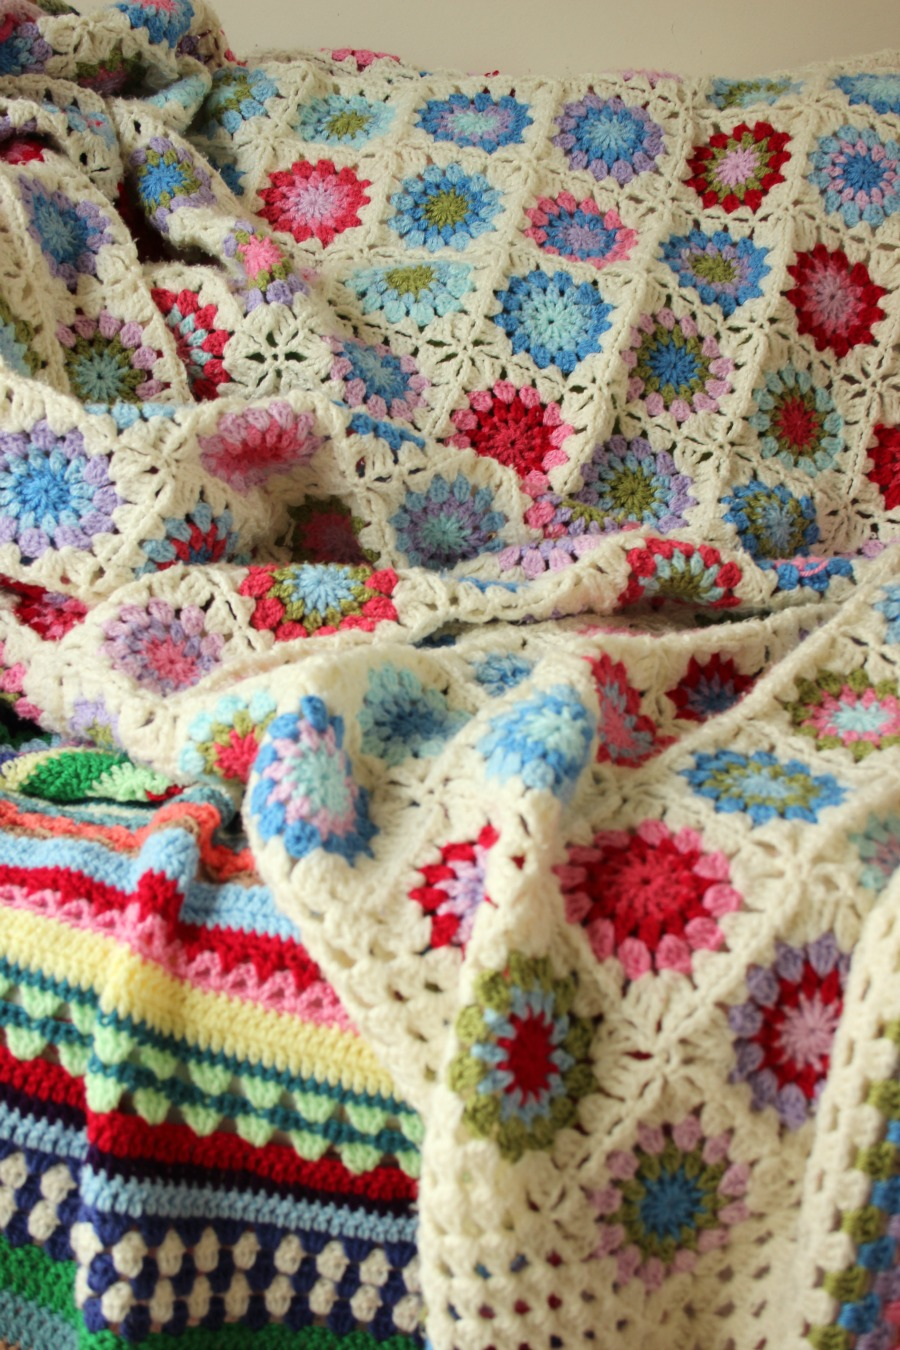 Crochet Circles in a Square Blanket. – Zeens and Roger